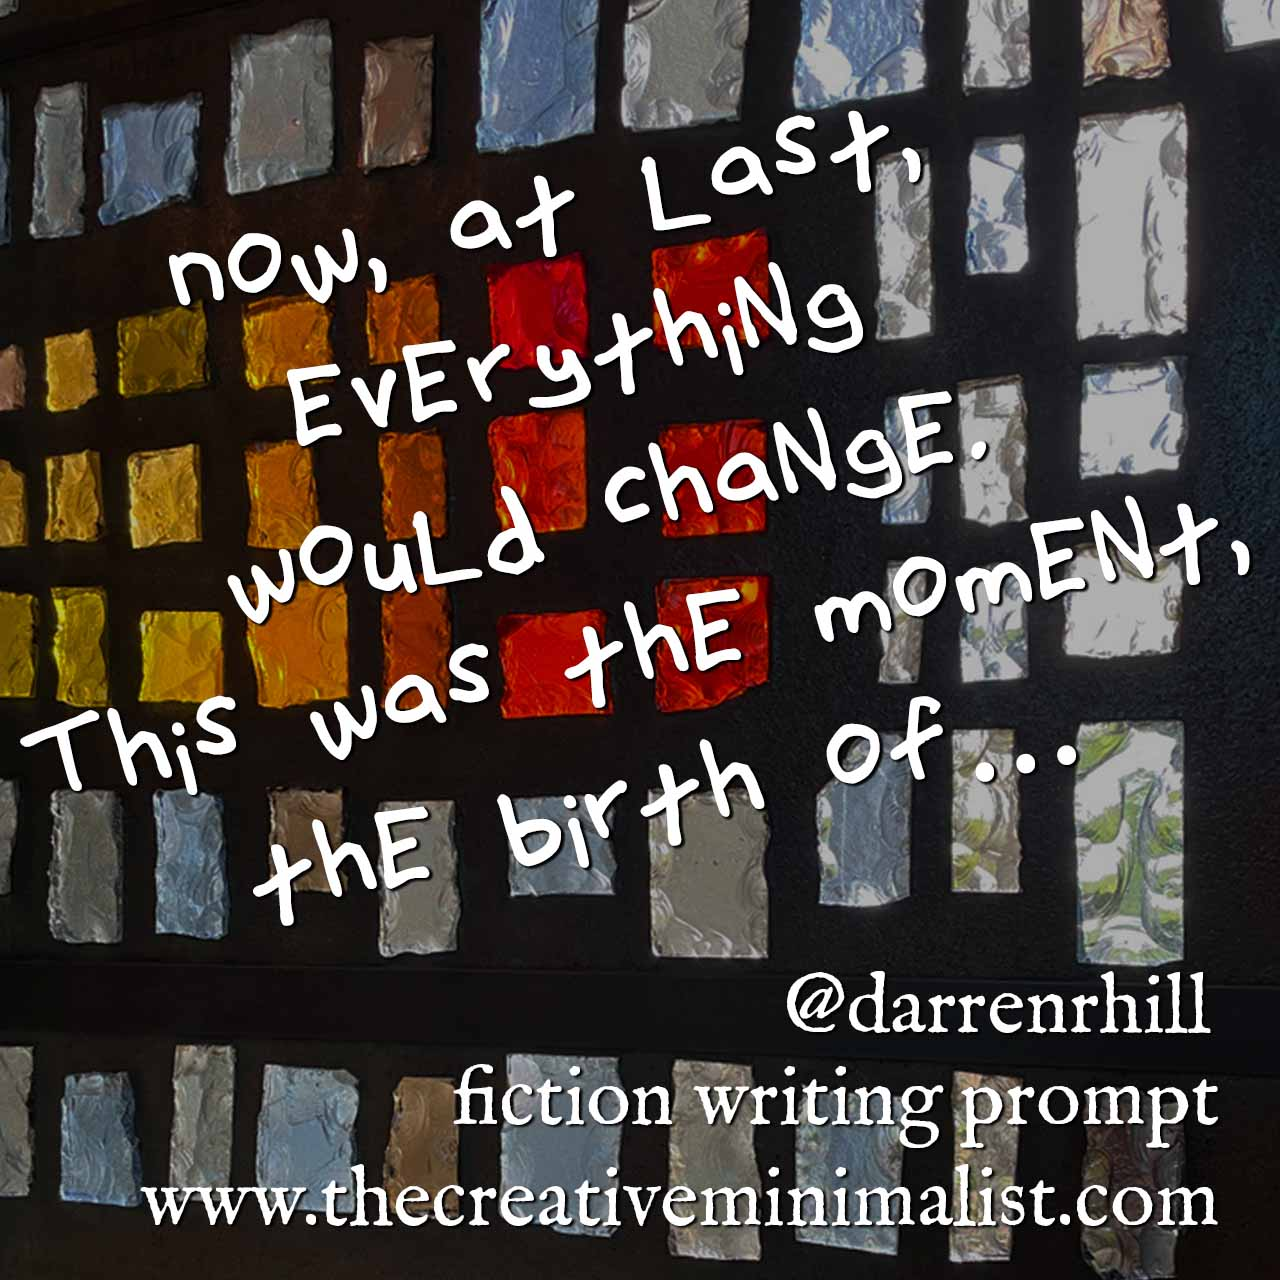 Now, at last, everything would change. This was the moment, the birth of… fiction writing prompt